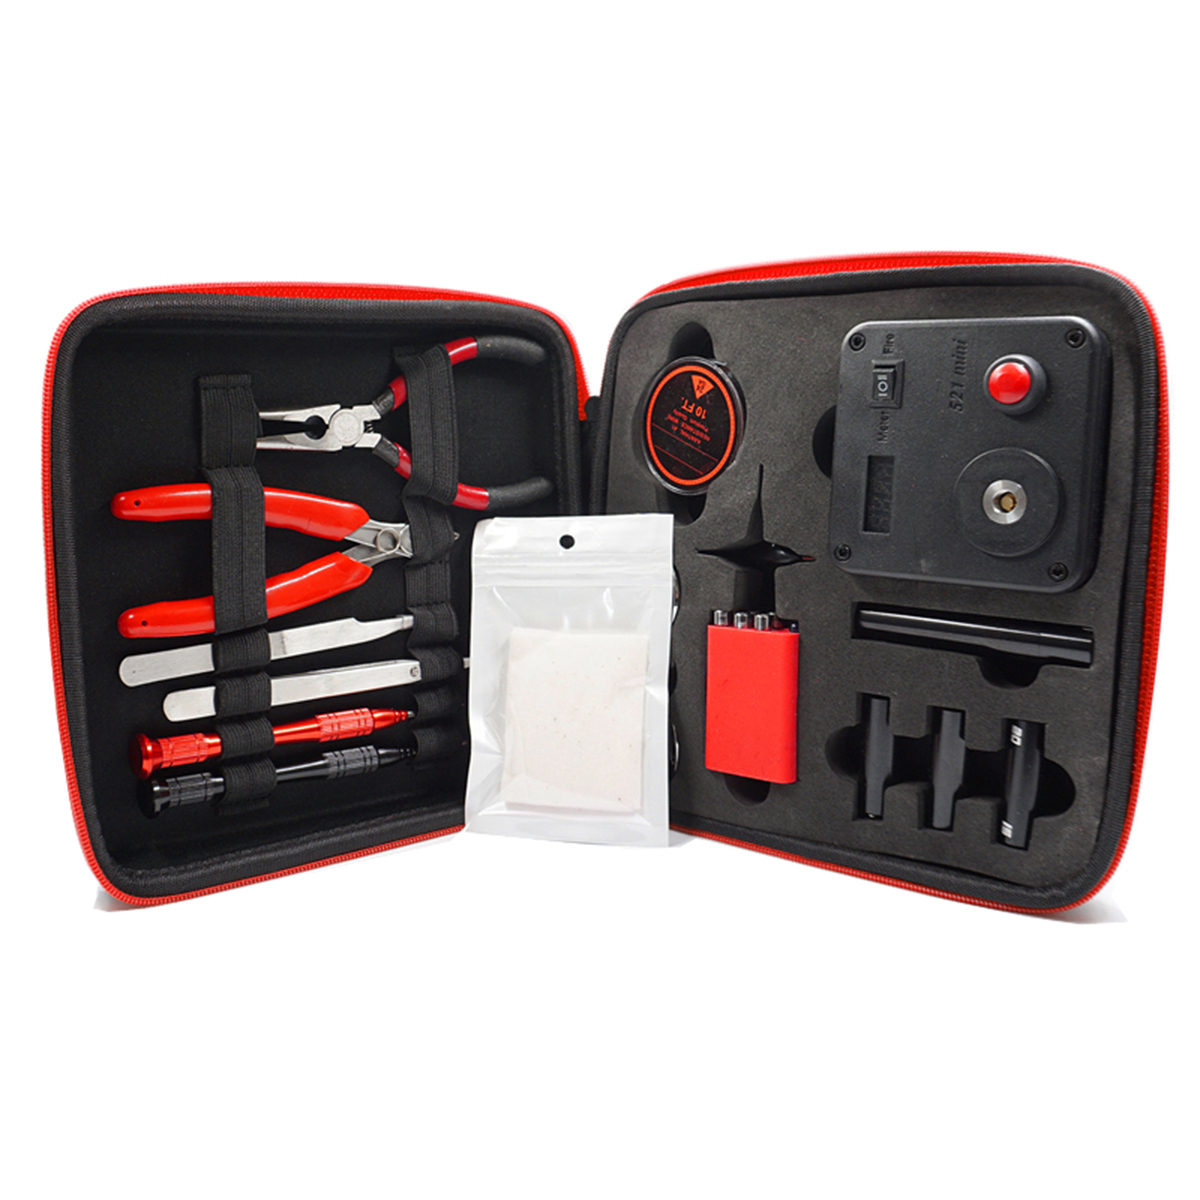 DSHA Update Coil Master V3 DIY Kit All-in-One CoilMaster V3+ Electronic Cigarette RDA Atomizer coil tool bag Accessories Vape original geekvape 521 master kit v3 all in one kit with the most functional tools and accessories e cig vape 521 master kit v3